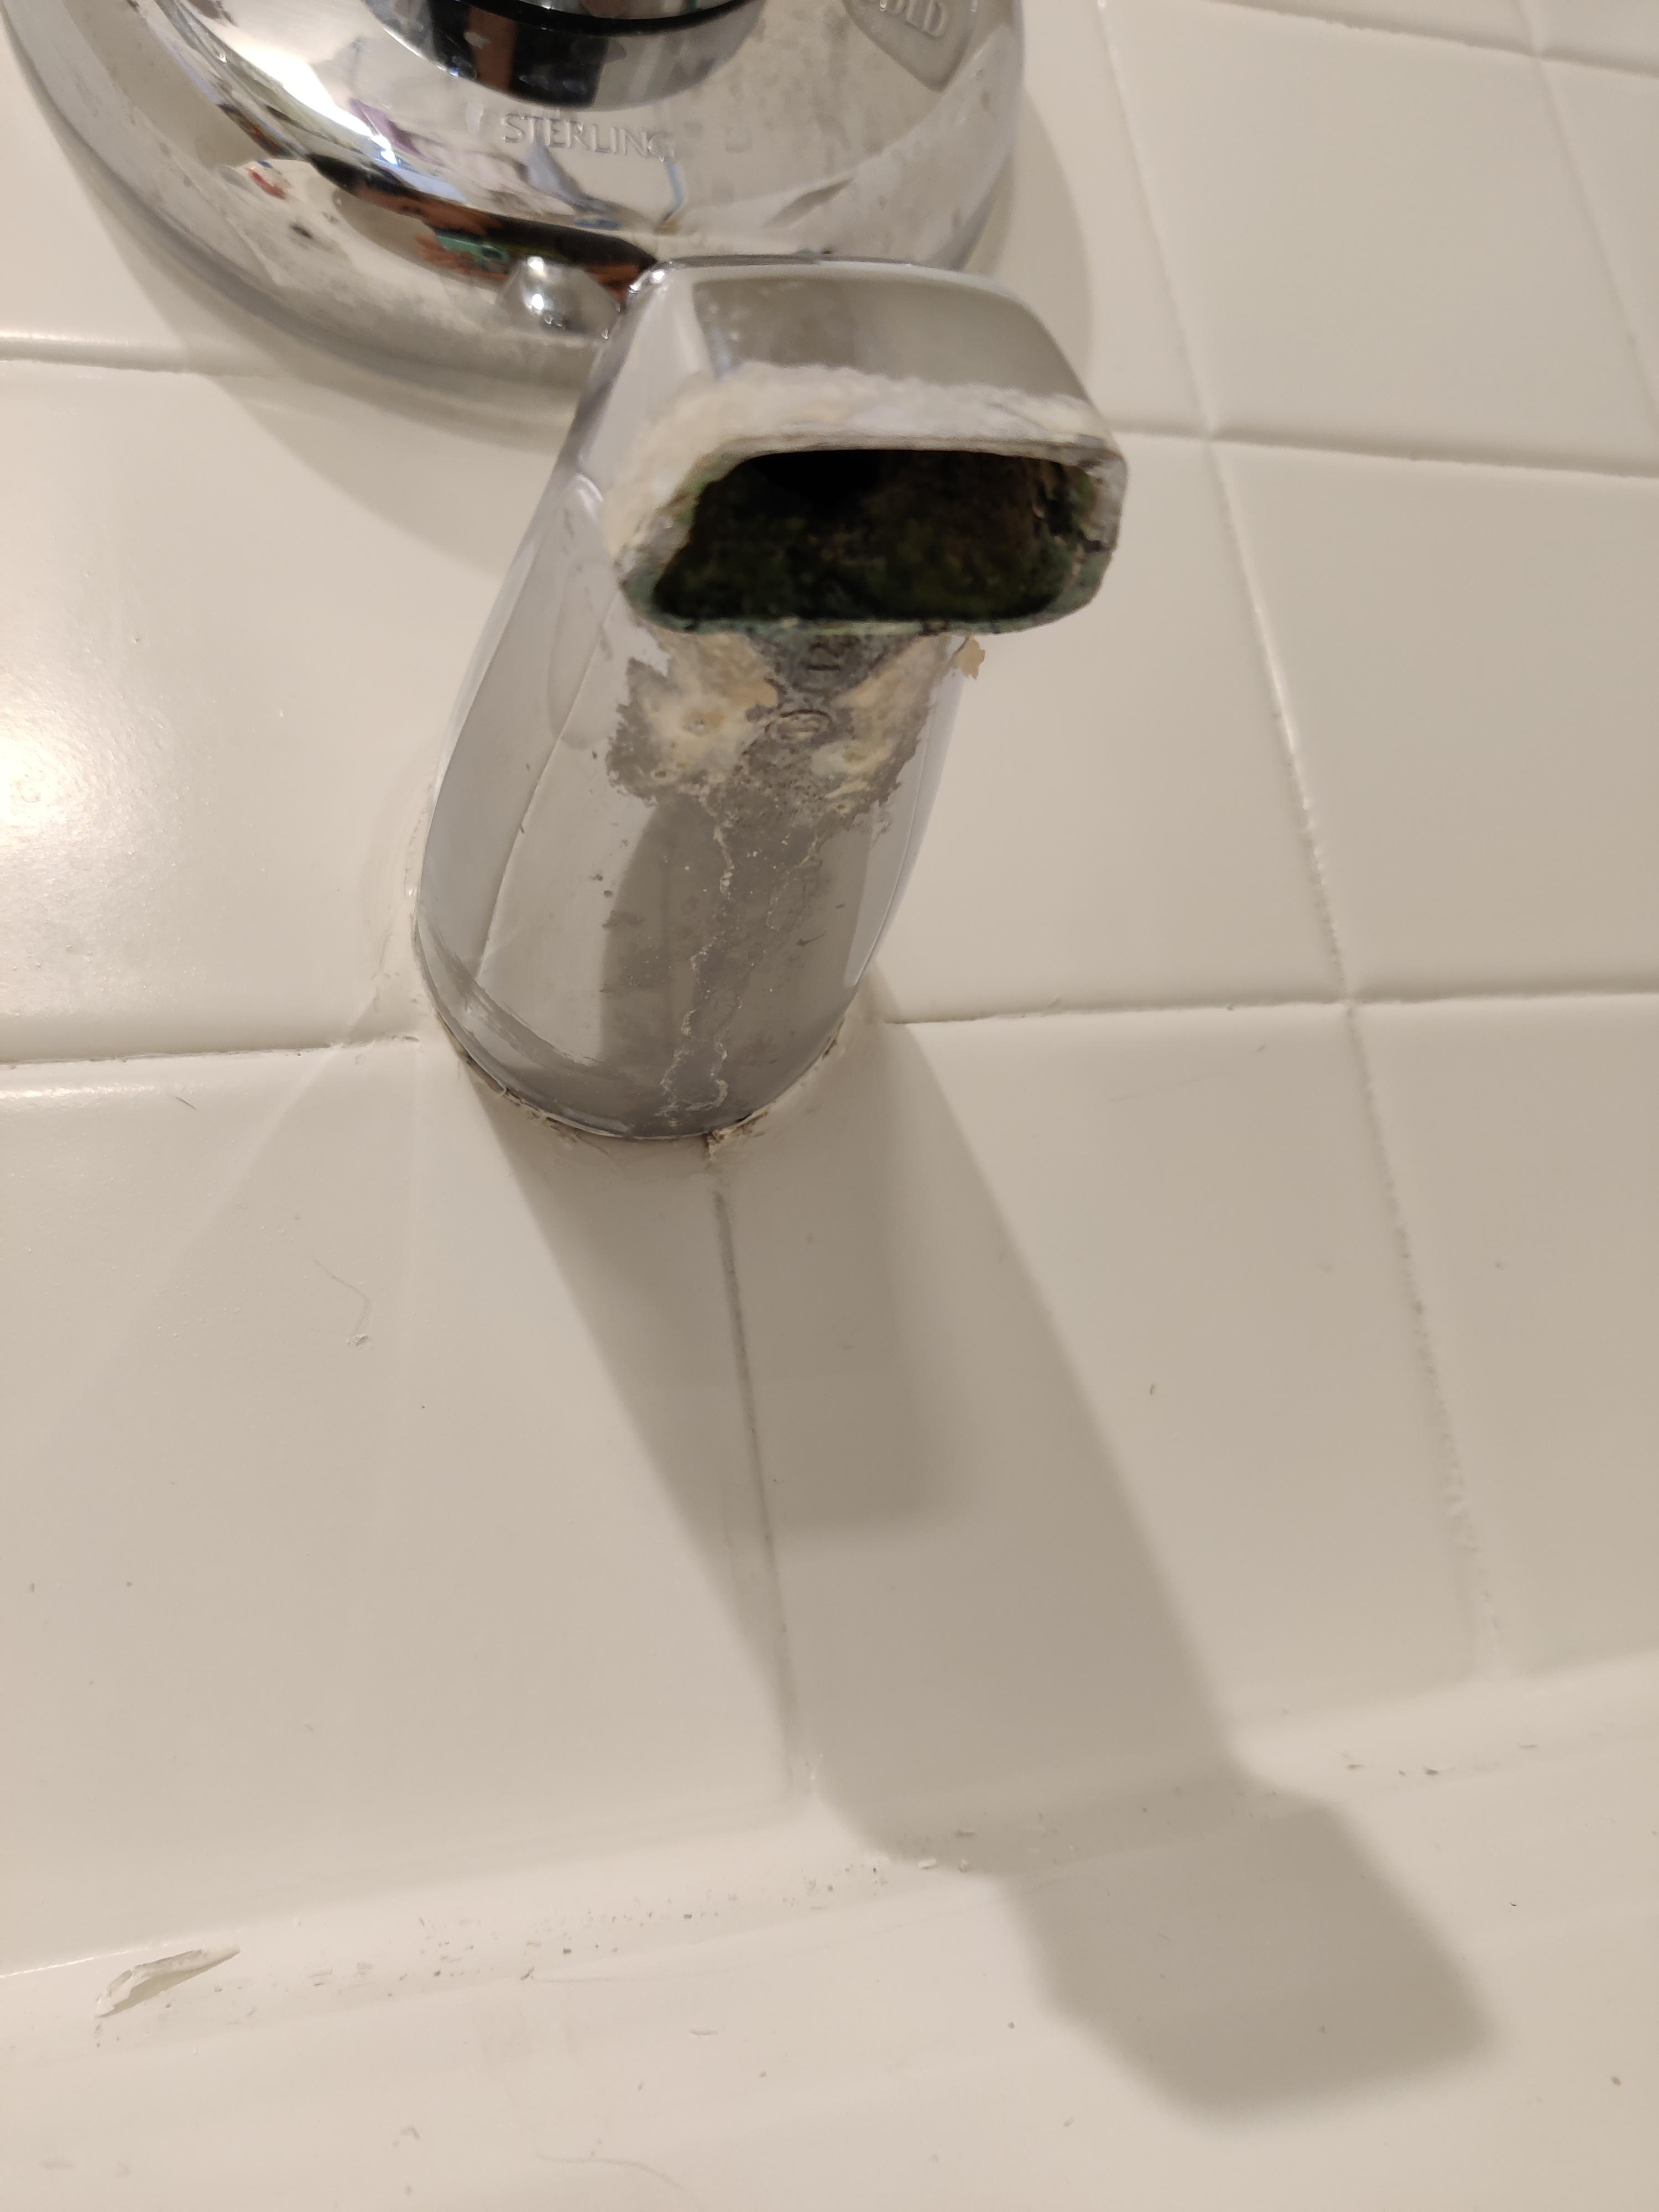 i want to replace this old tub faucet